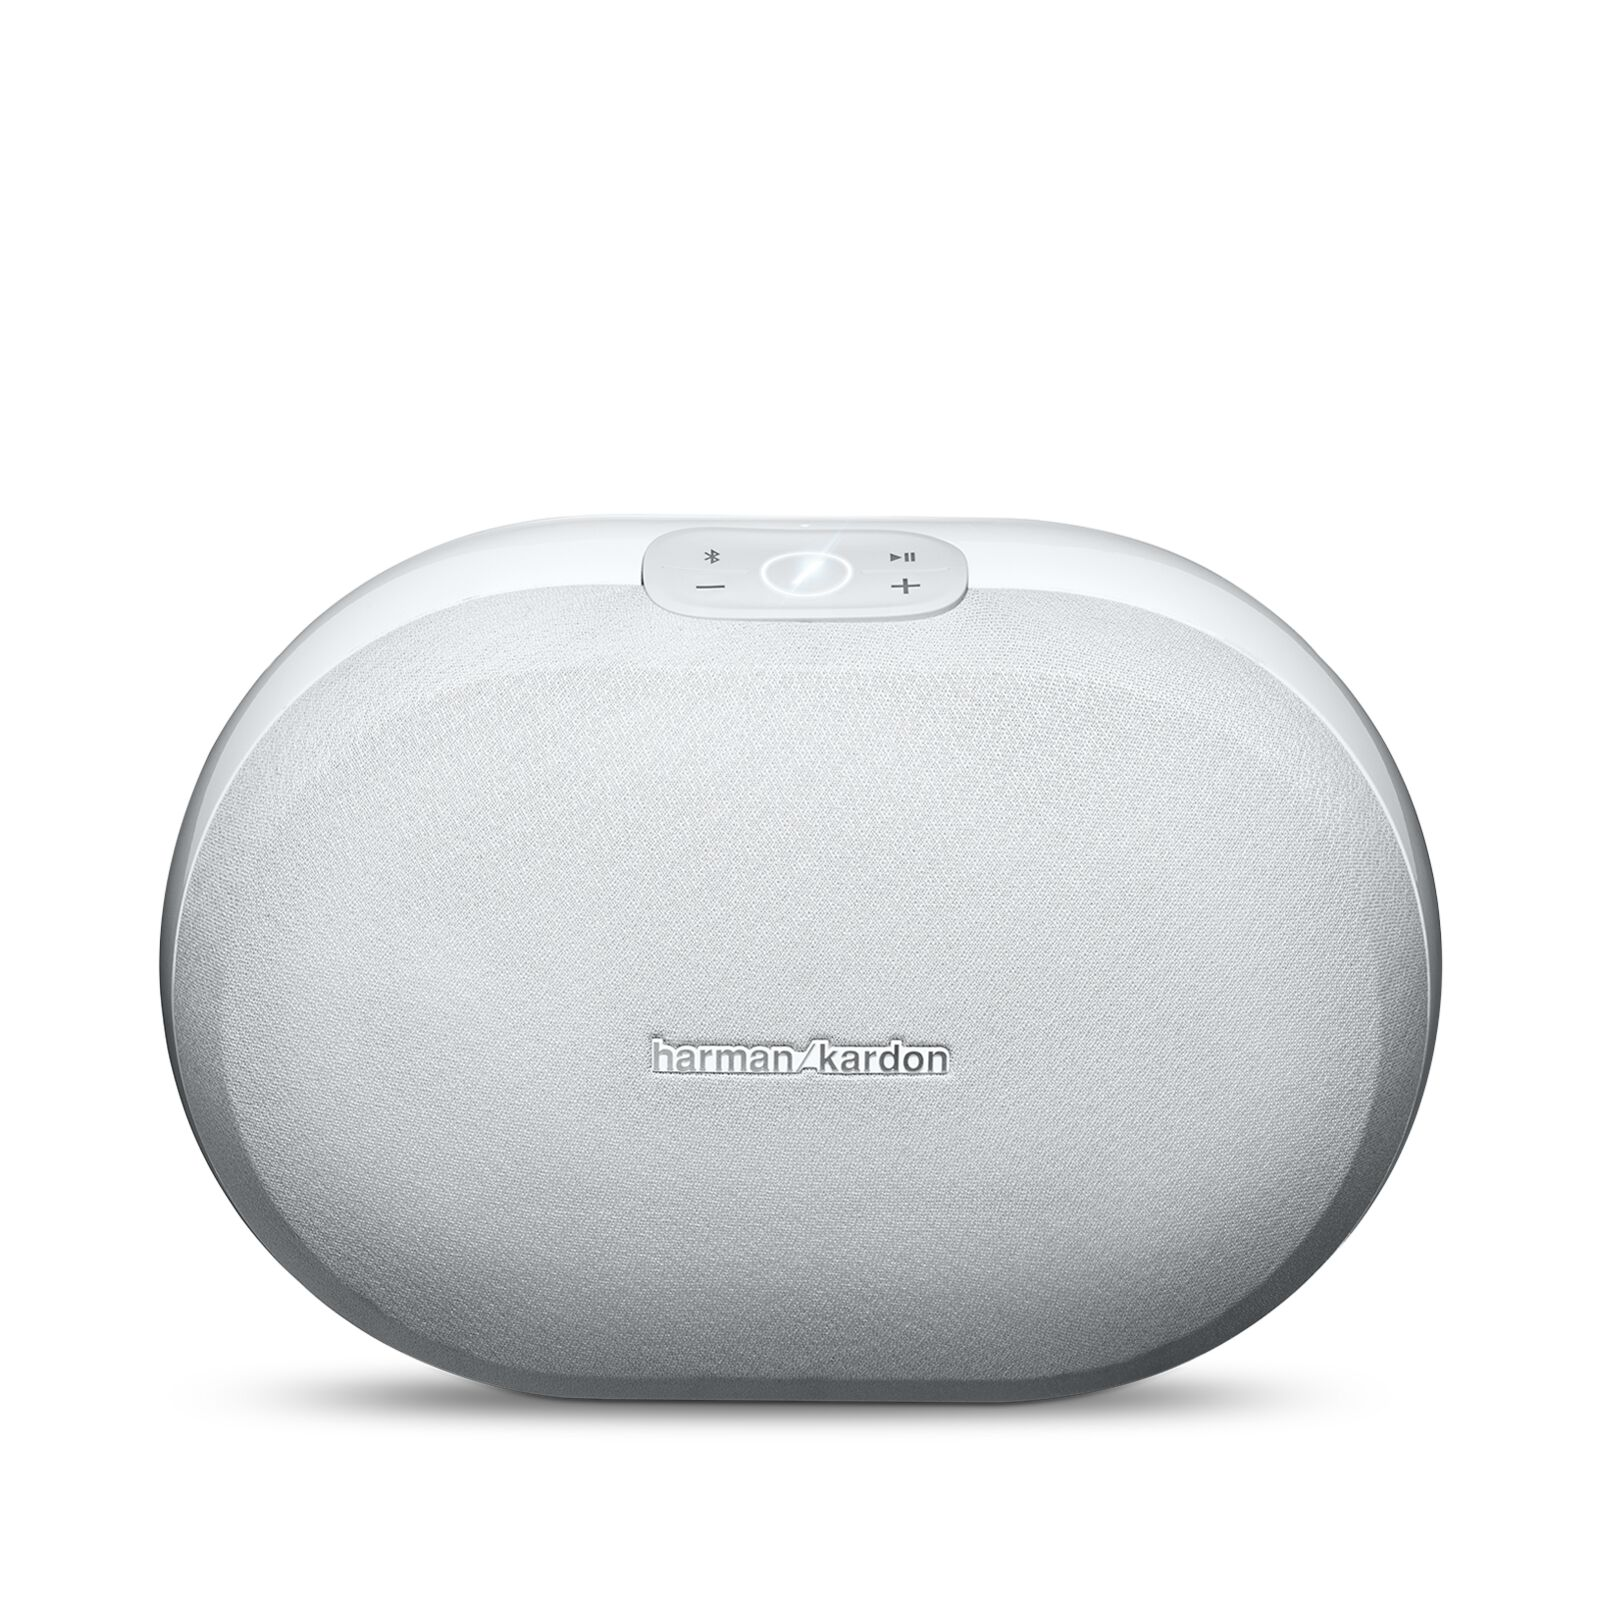 Harman Kardon Omni 20 Wireless speaker